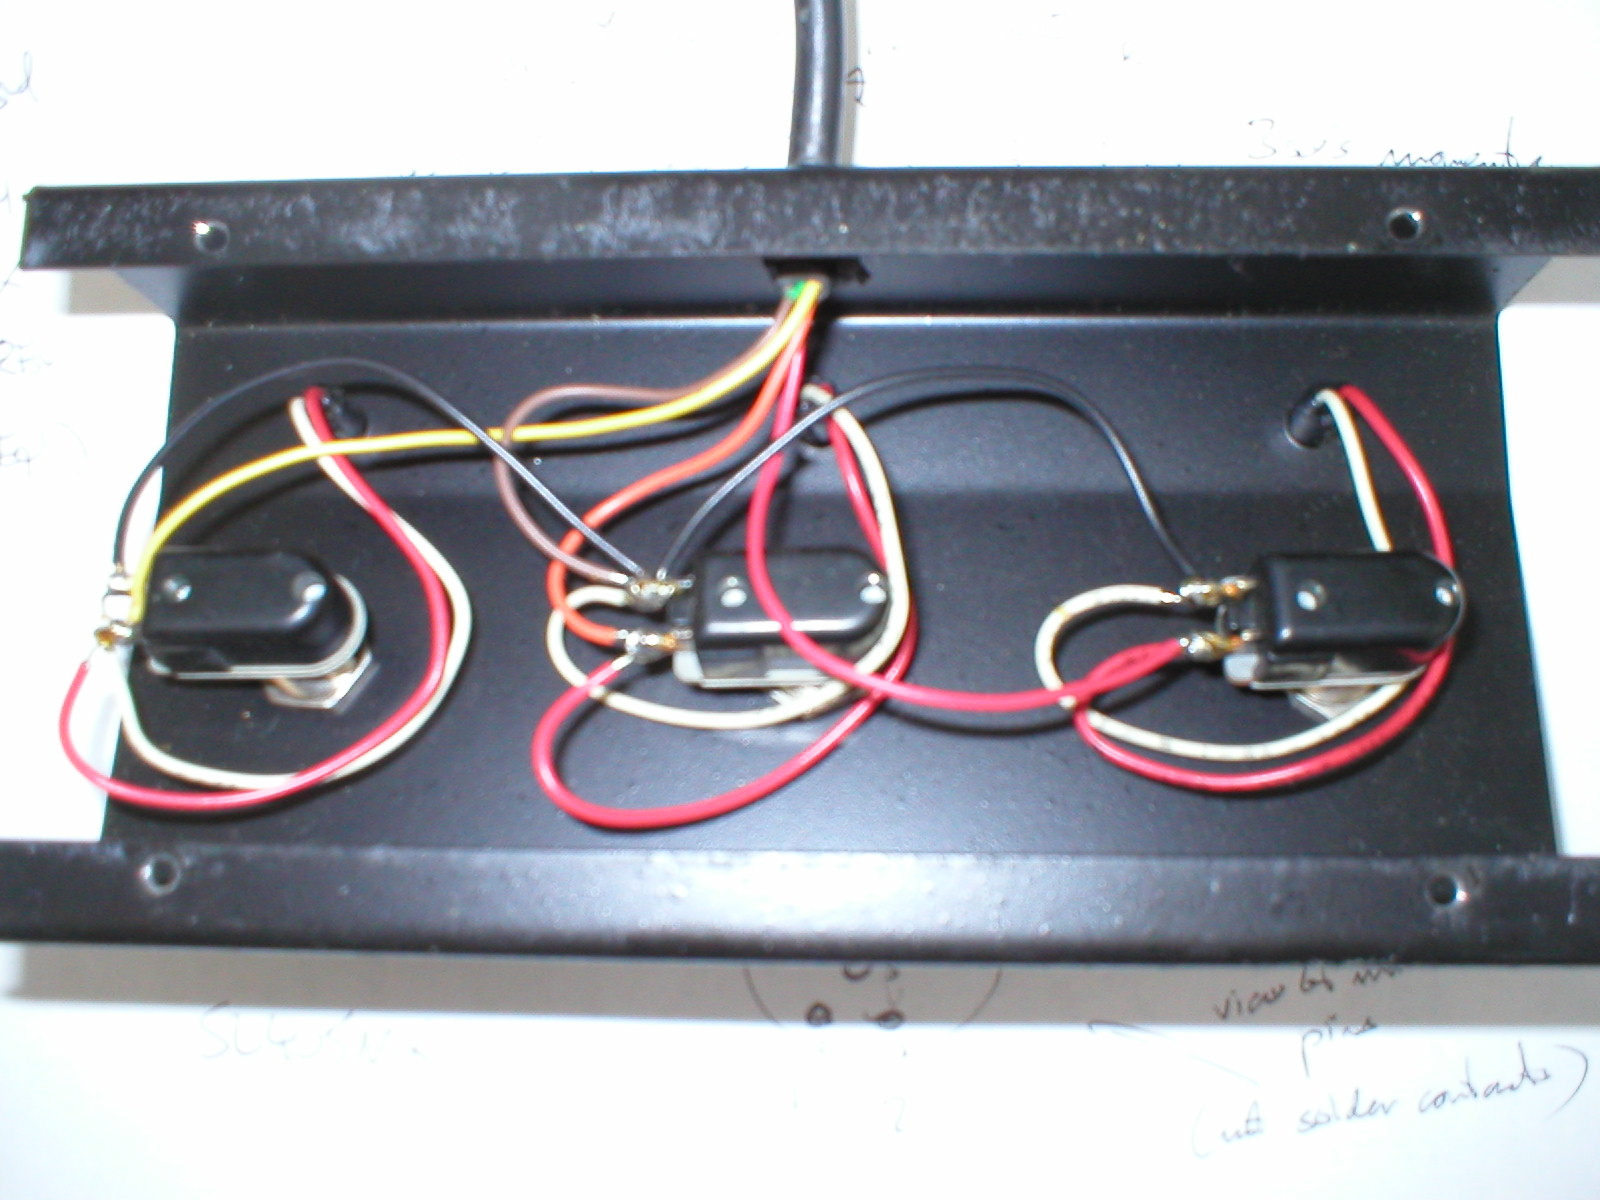 Wiring Diagram For Motorguide Foot Pedal